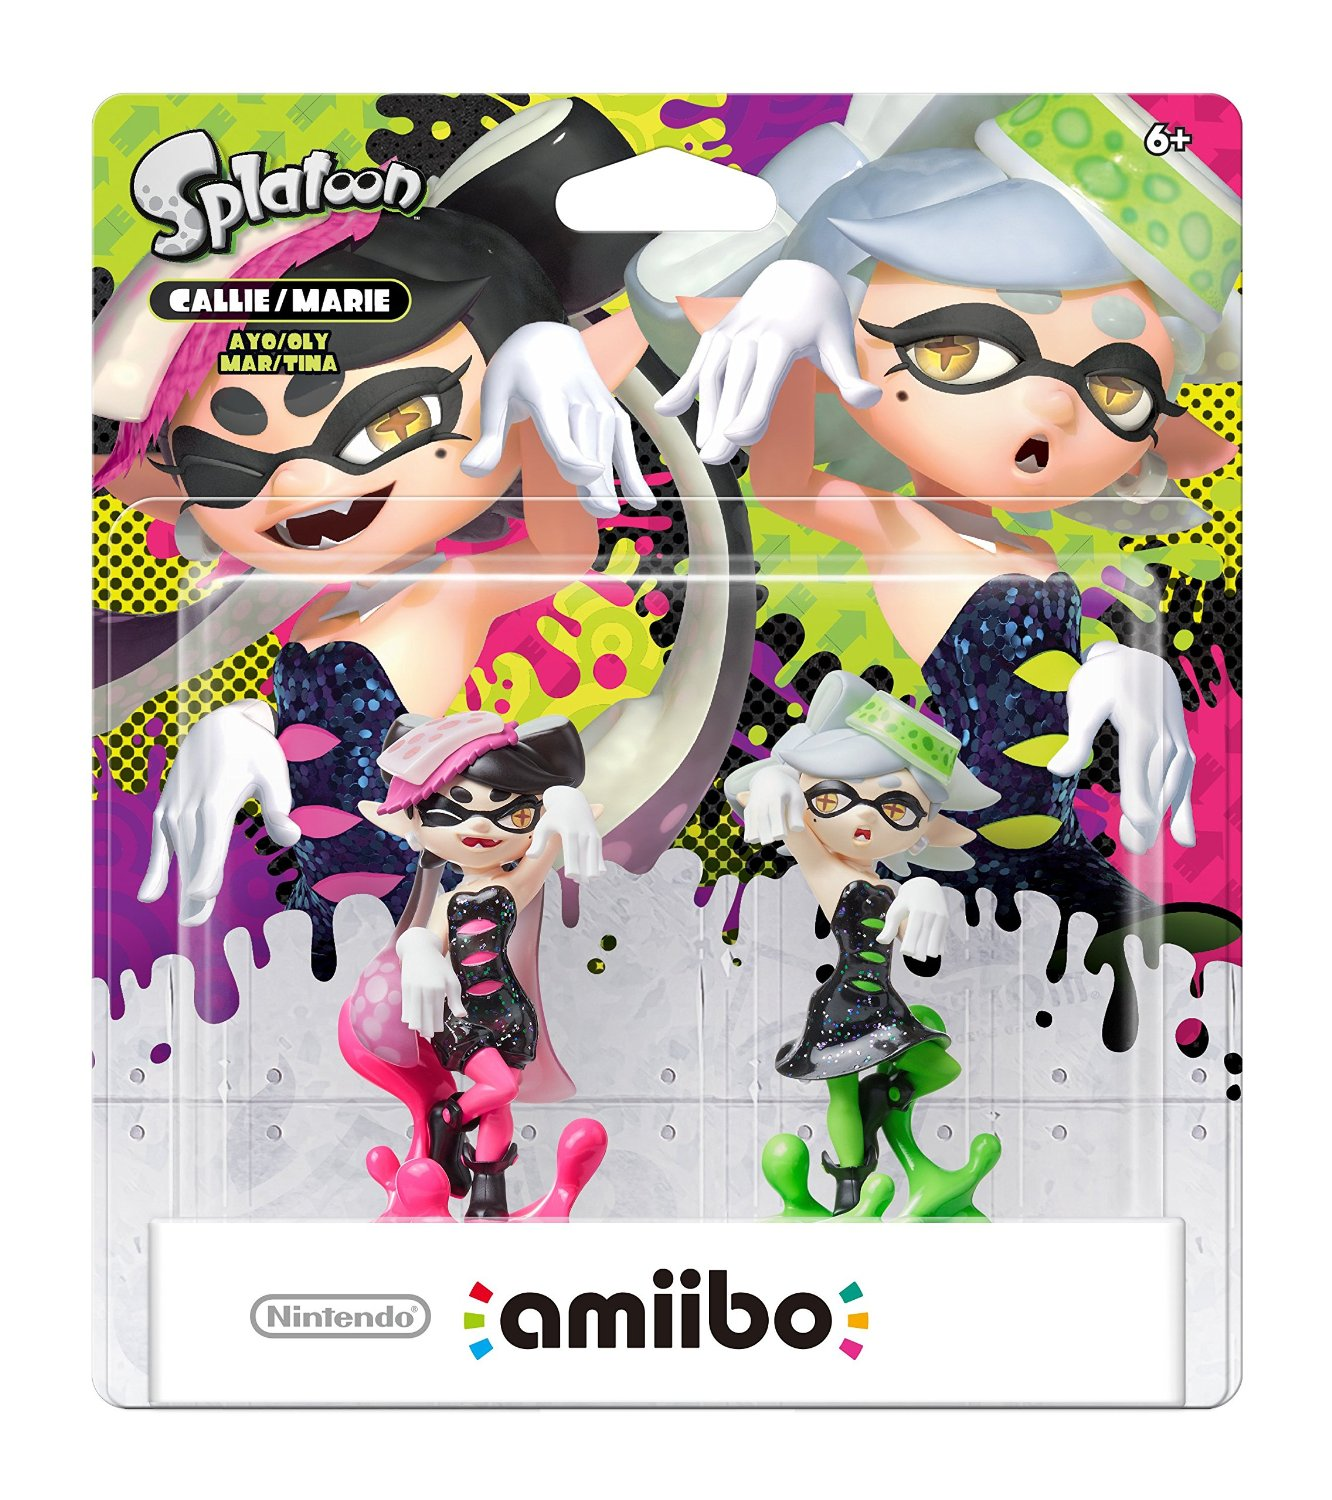 New Splatoon amiibo pre-orders live on Amazon Canada ...